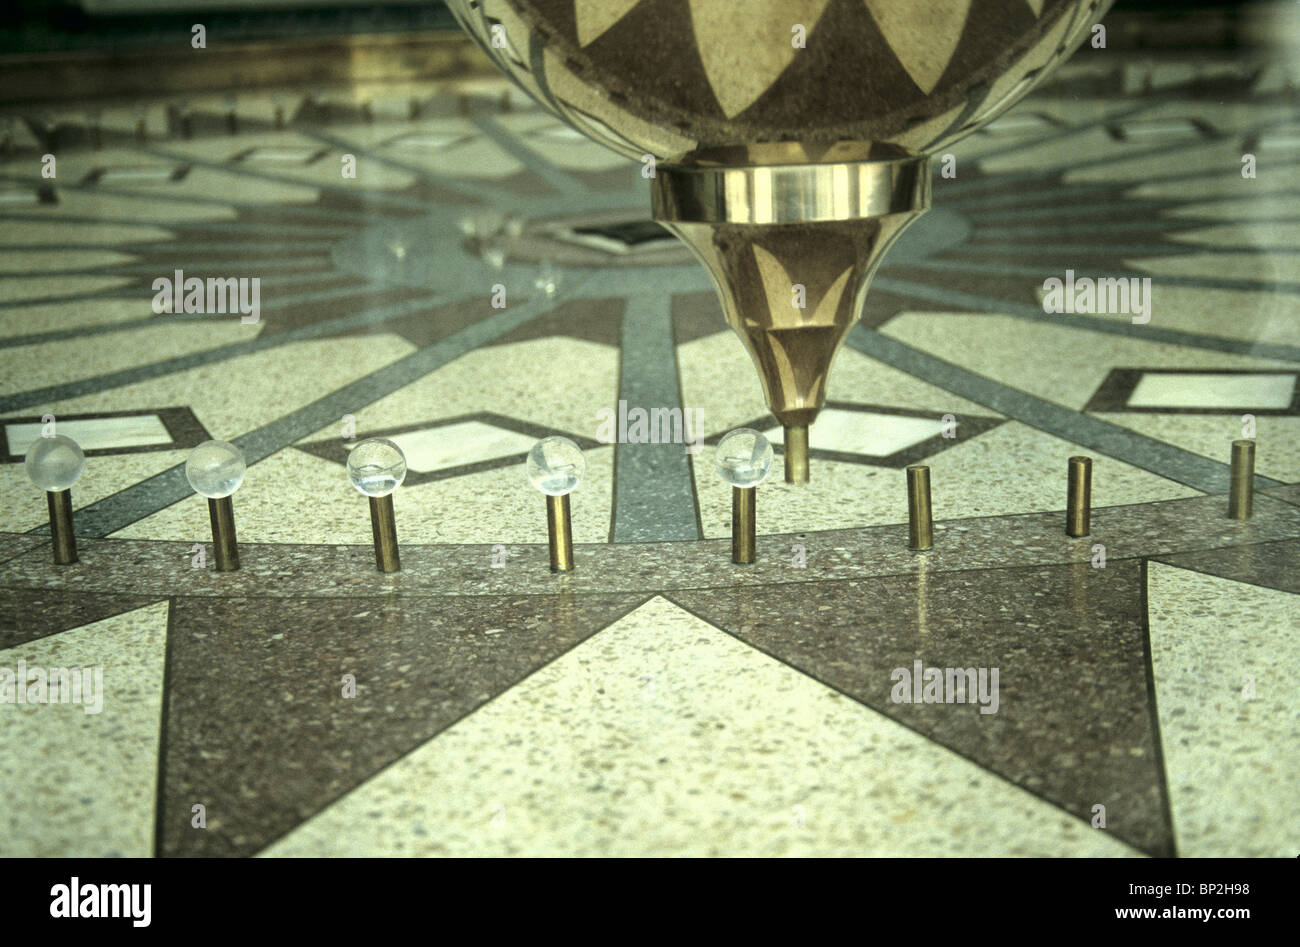 Foucault Pendulum, 12 ft. arc, - Stock Image